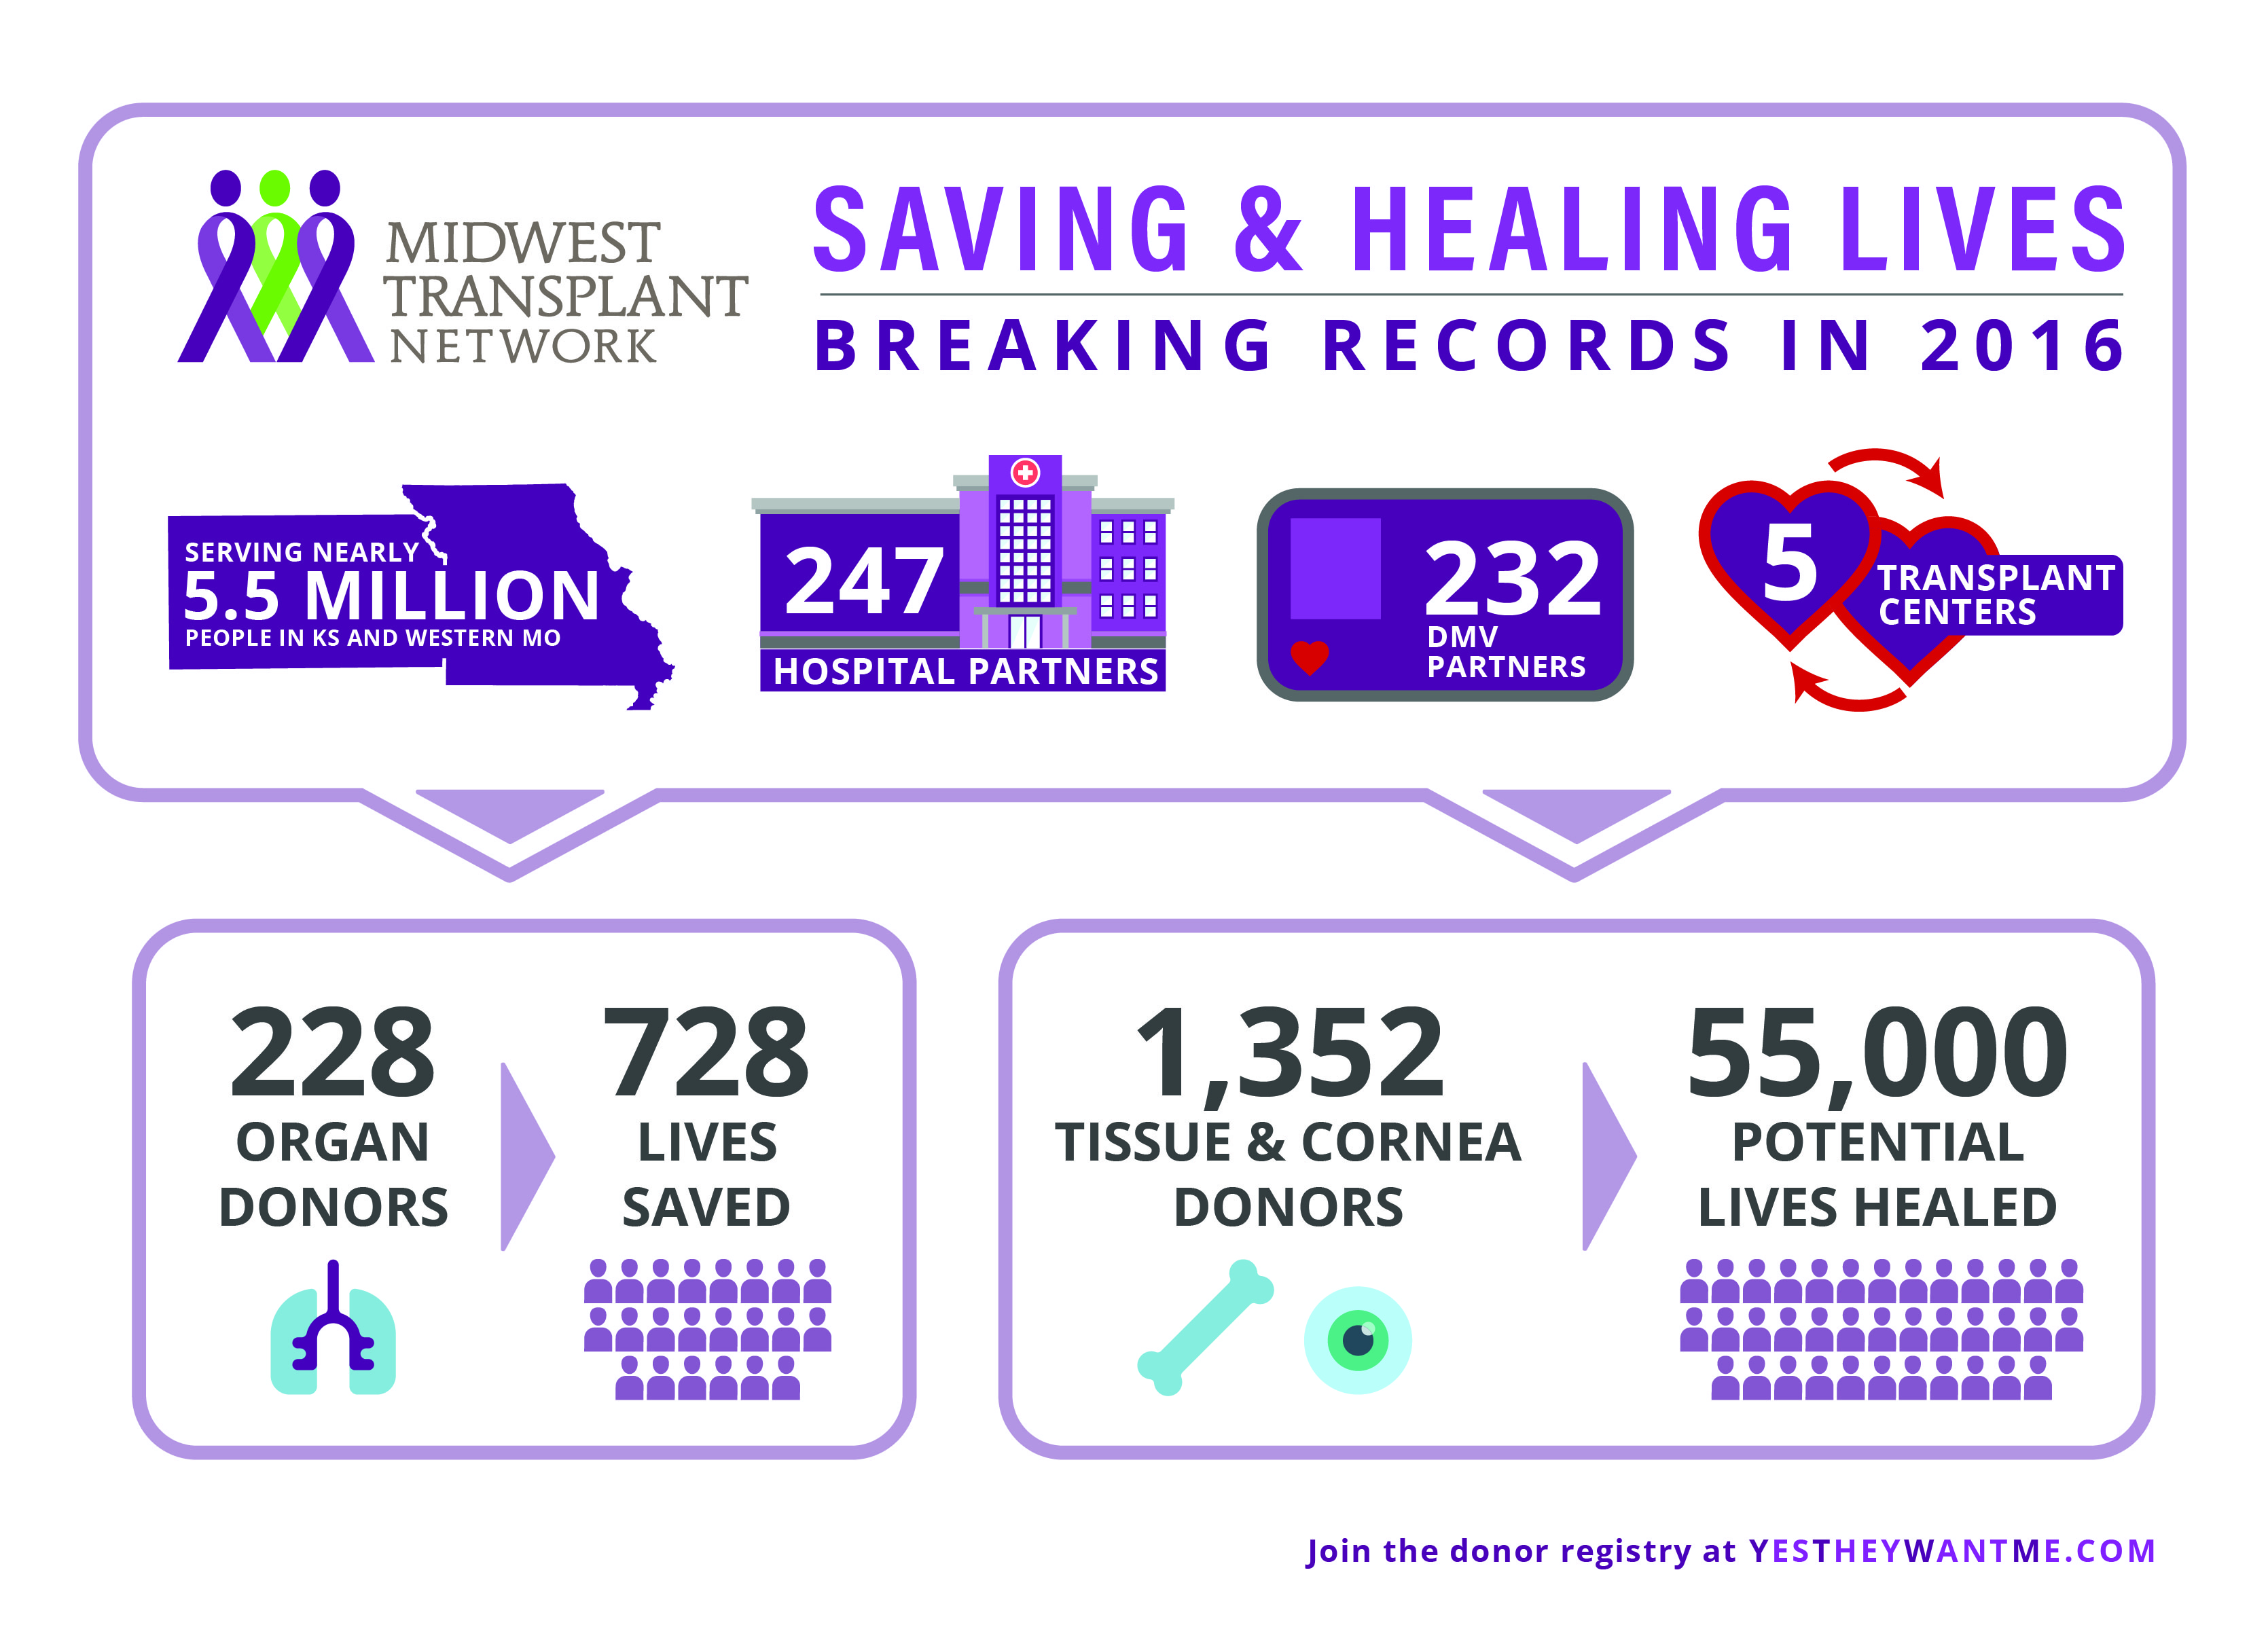 Midwest Transplant Network Reports Record Number of Organ